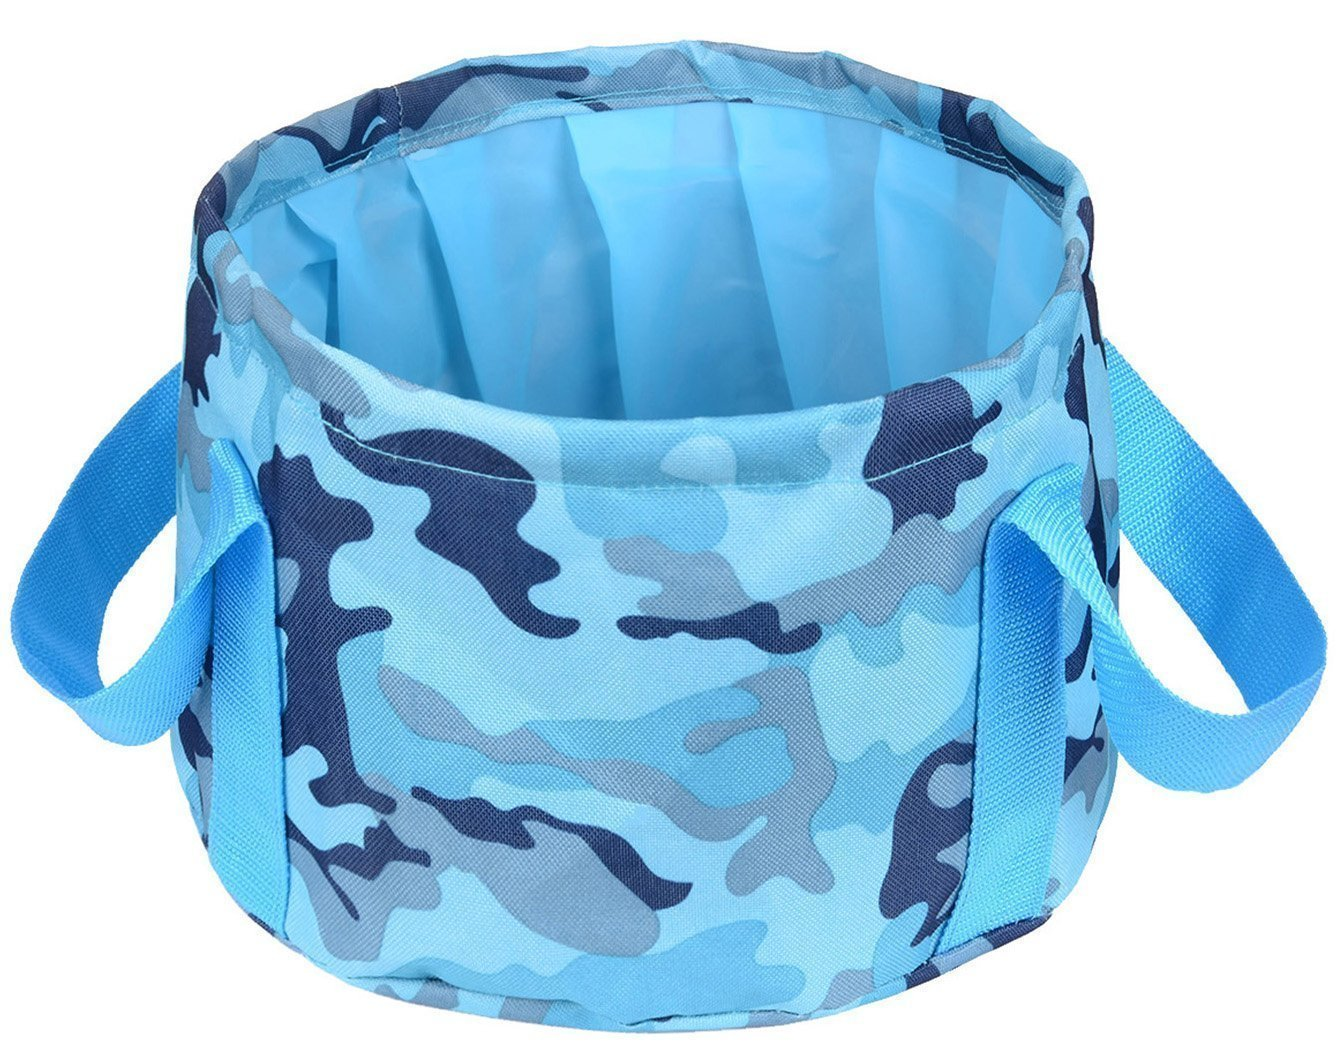 Ranaphil Premium Collapsible Bucket With Carrying Pouch Compact Portable Folding Water Container For Camping Hiking Travel Fishing